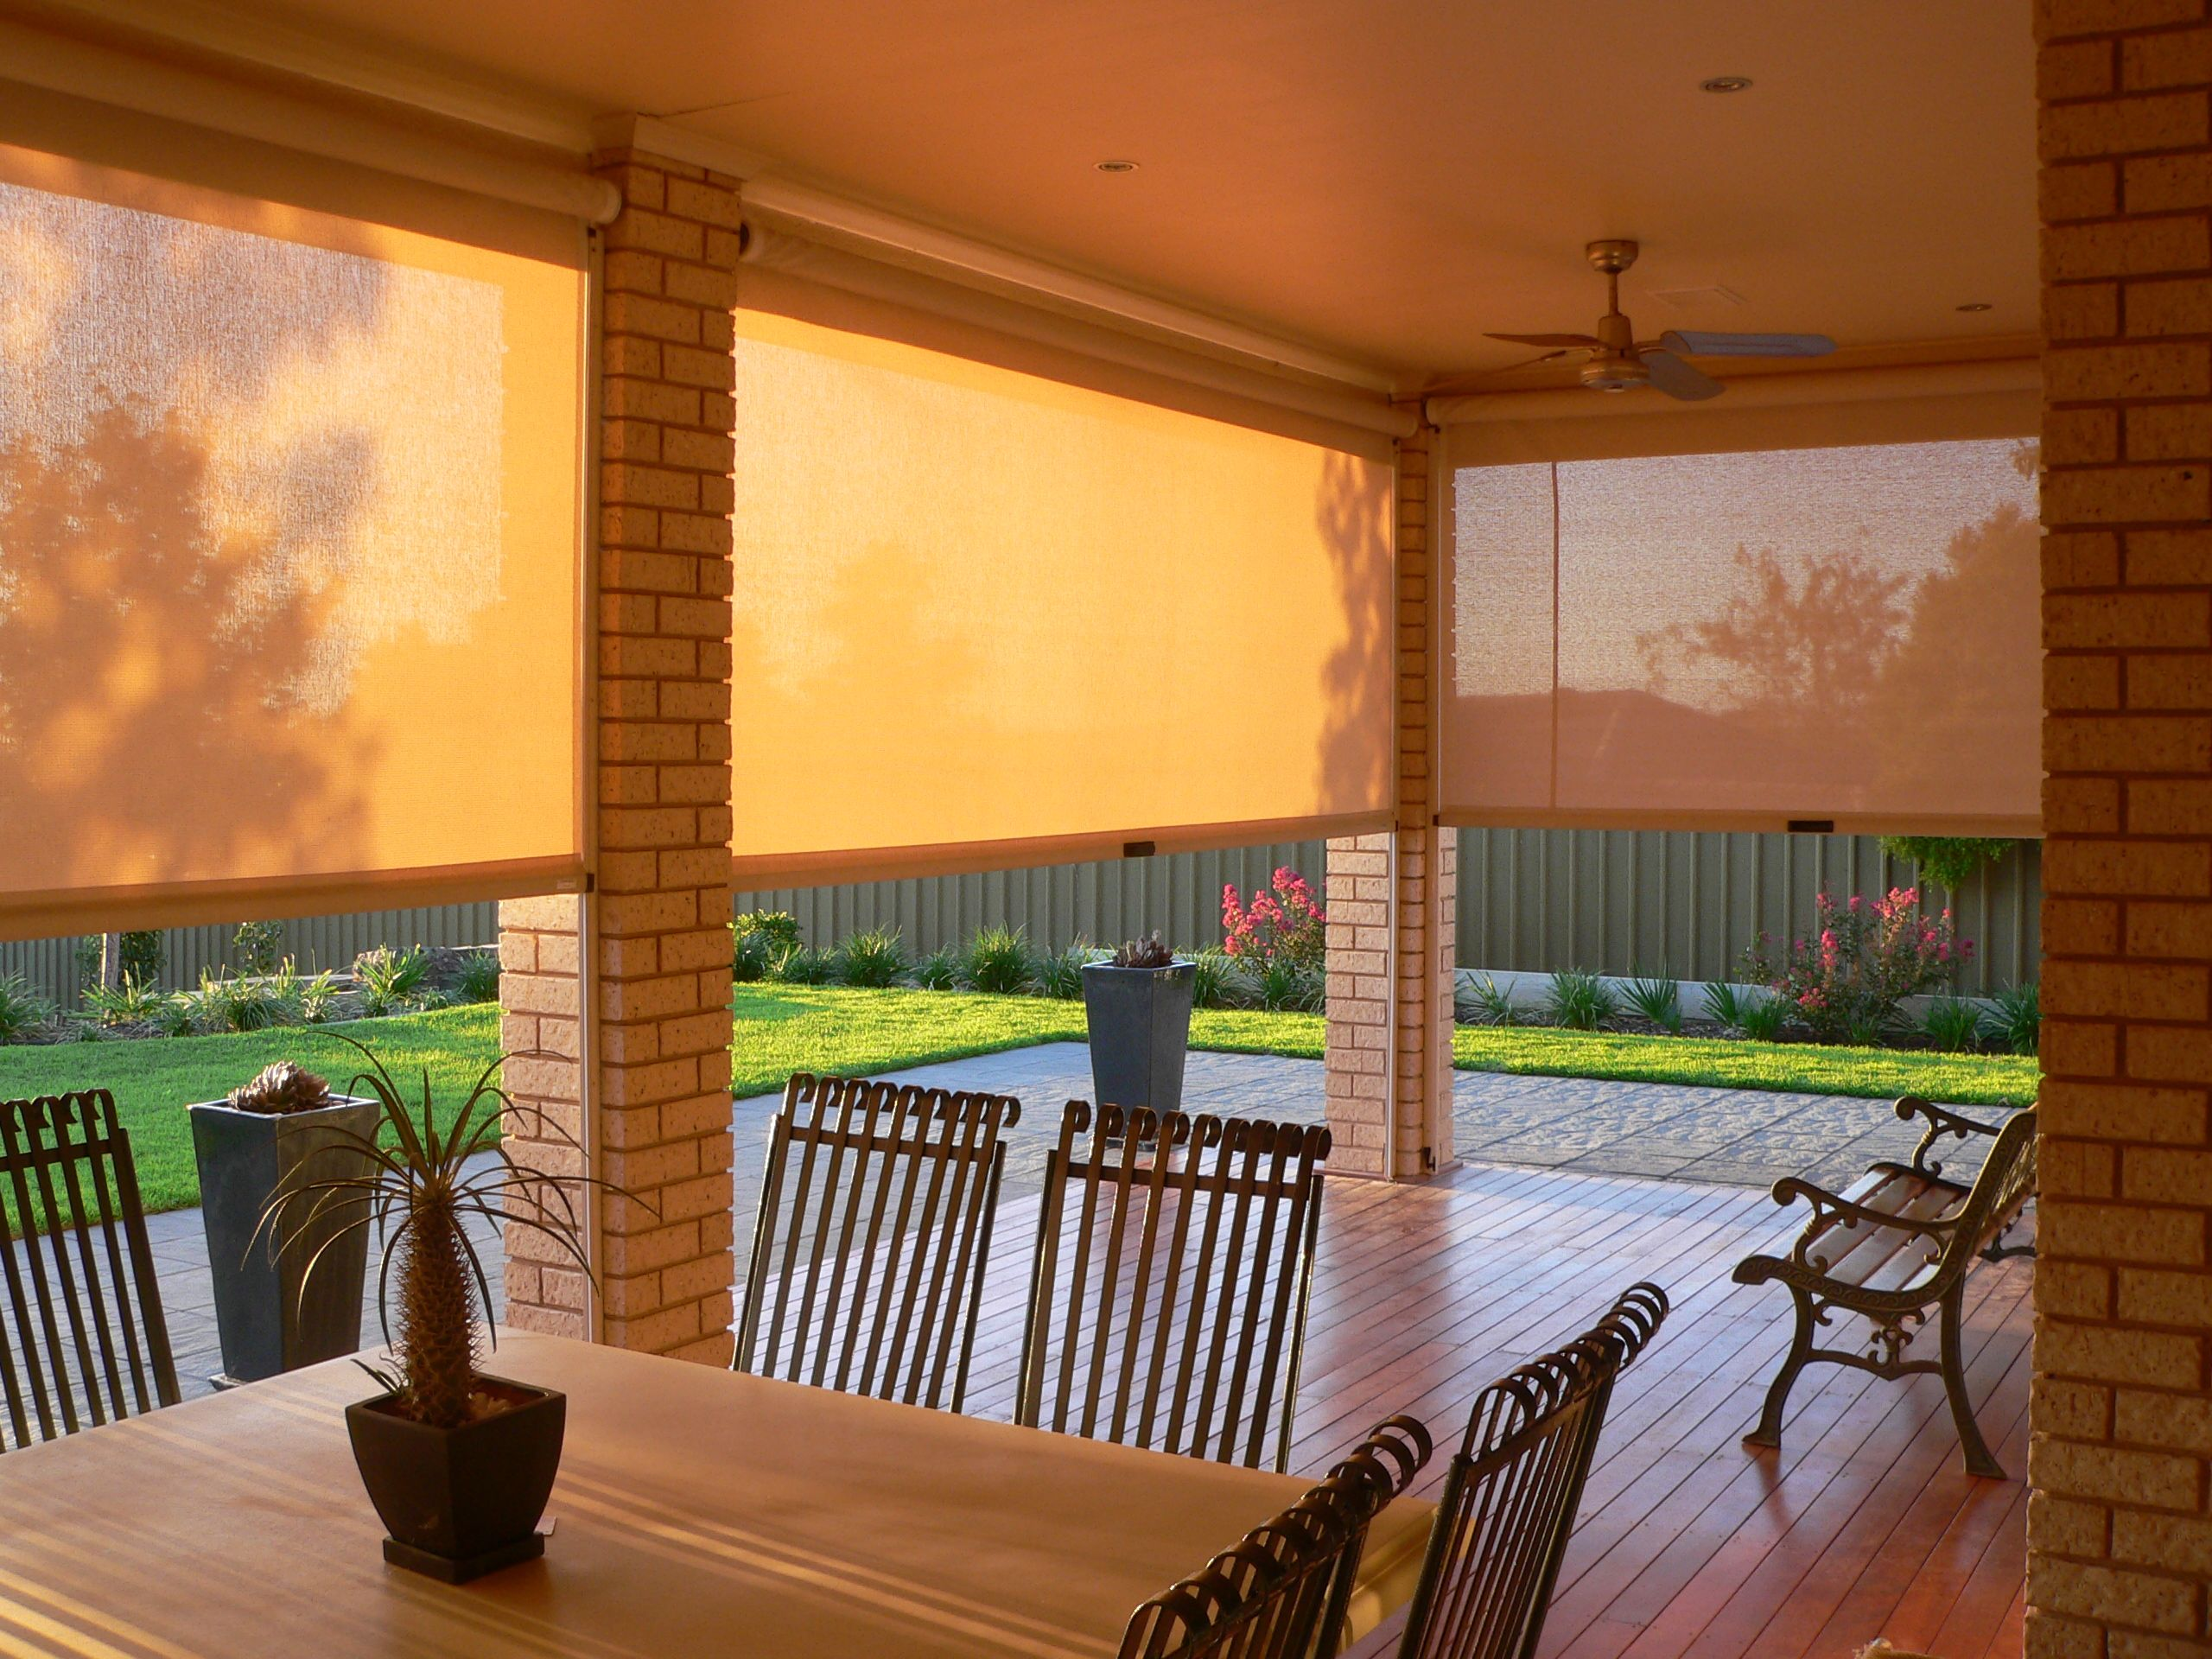 Outdoor Blinds & Cafe Blinds | Clear & Waterproof Options! | LIVING ...